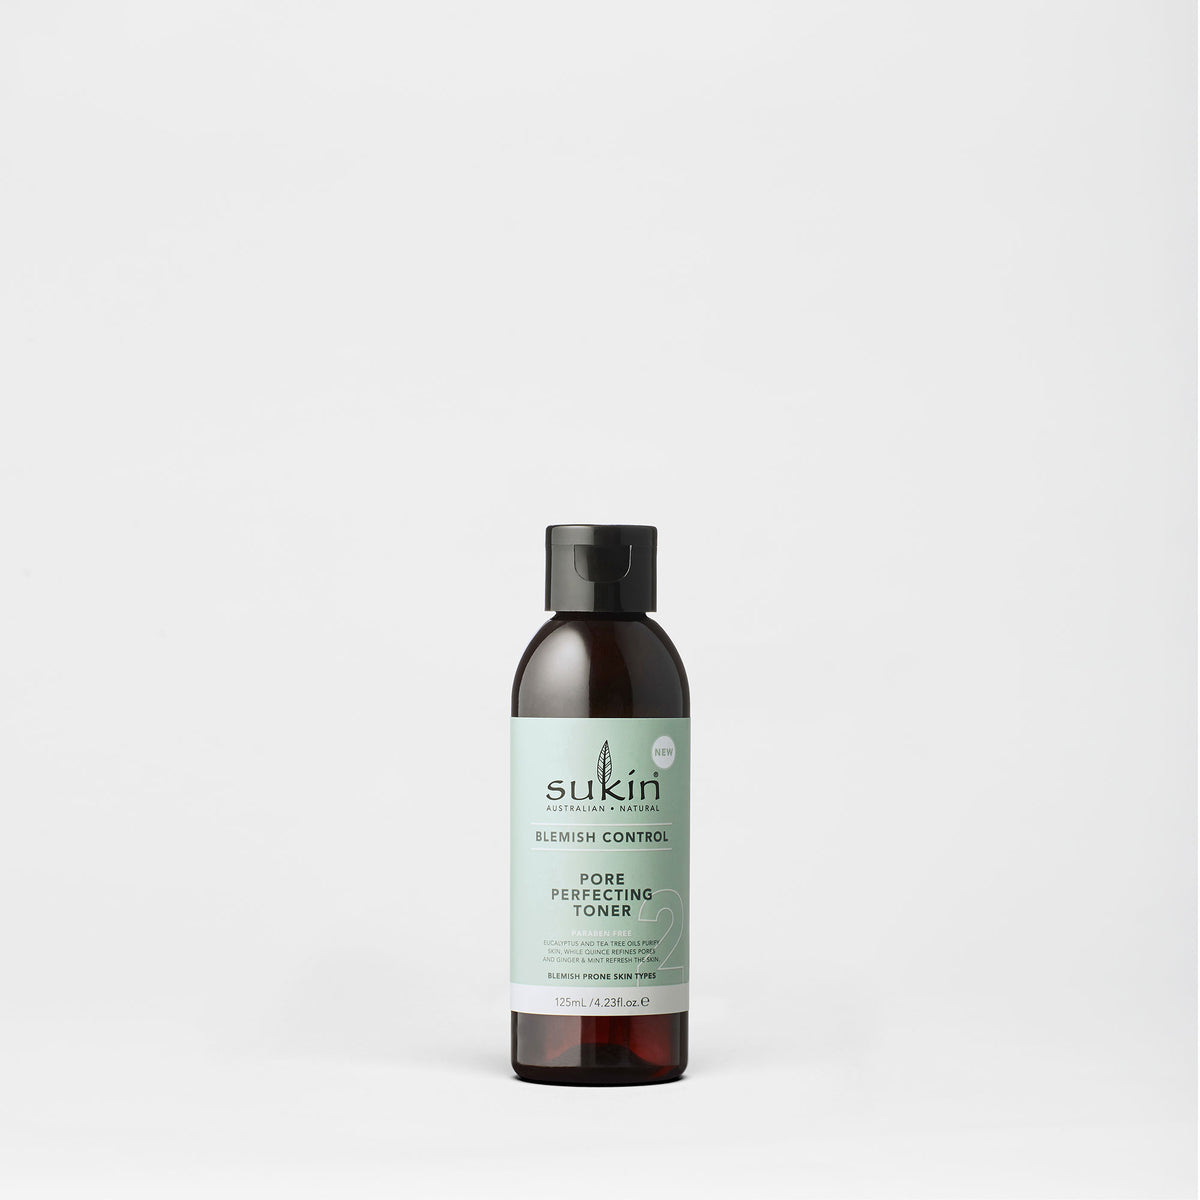 Sukin Natural Pore Perfecting Toner | Blemish Control 125ml